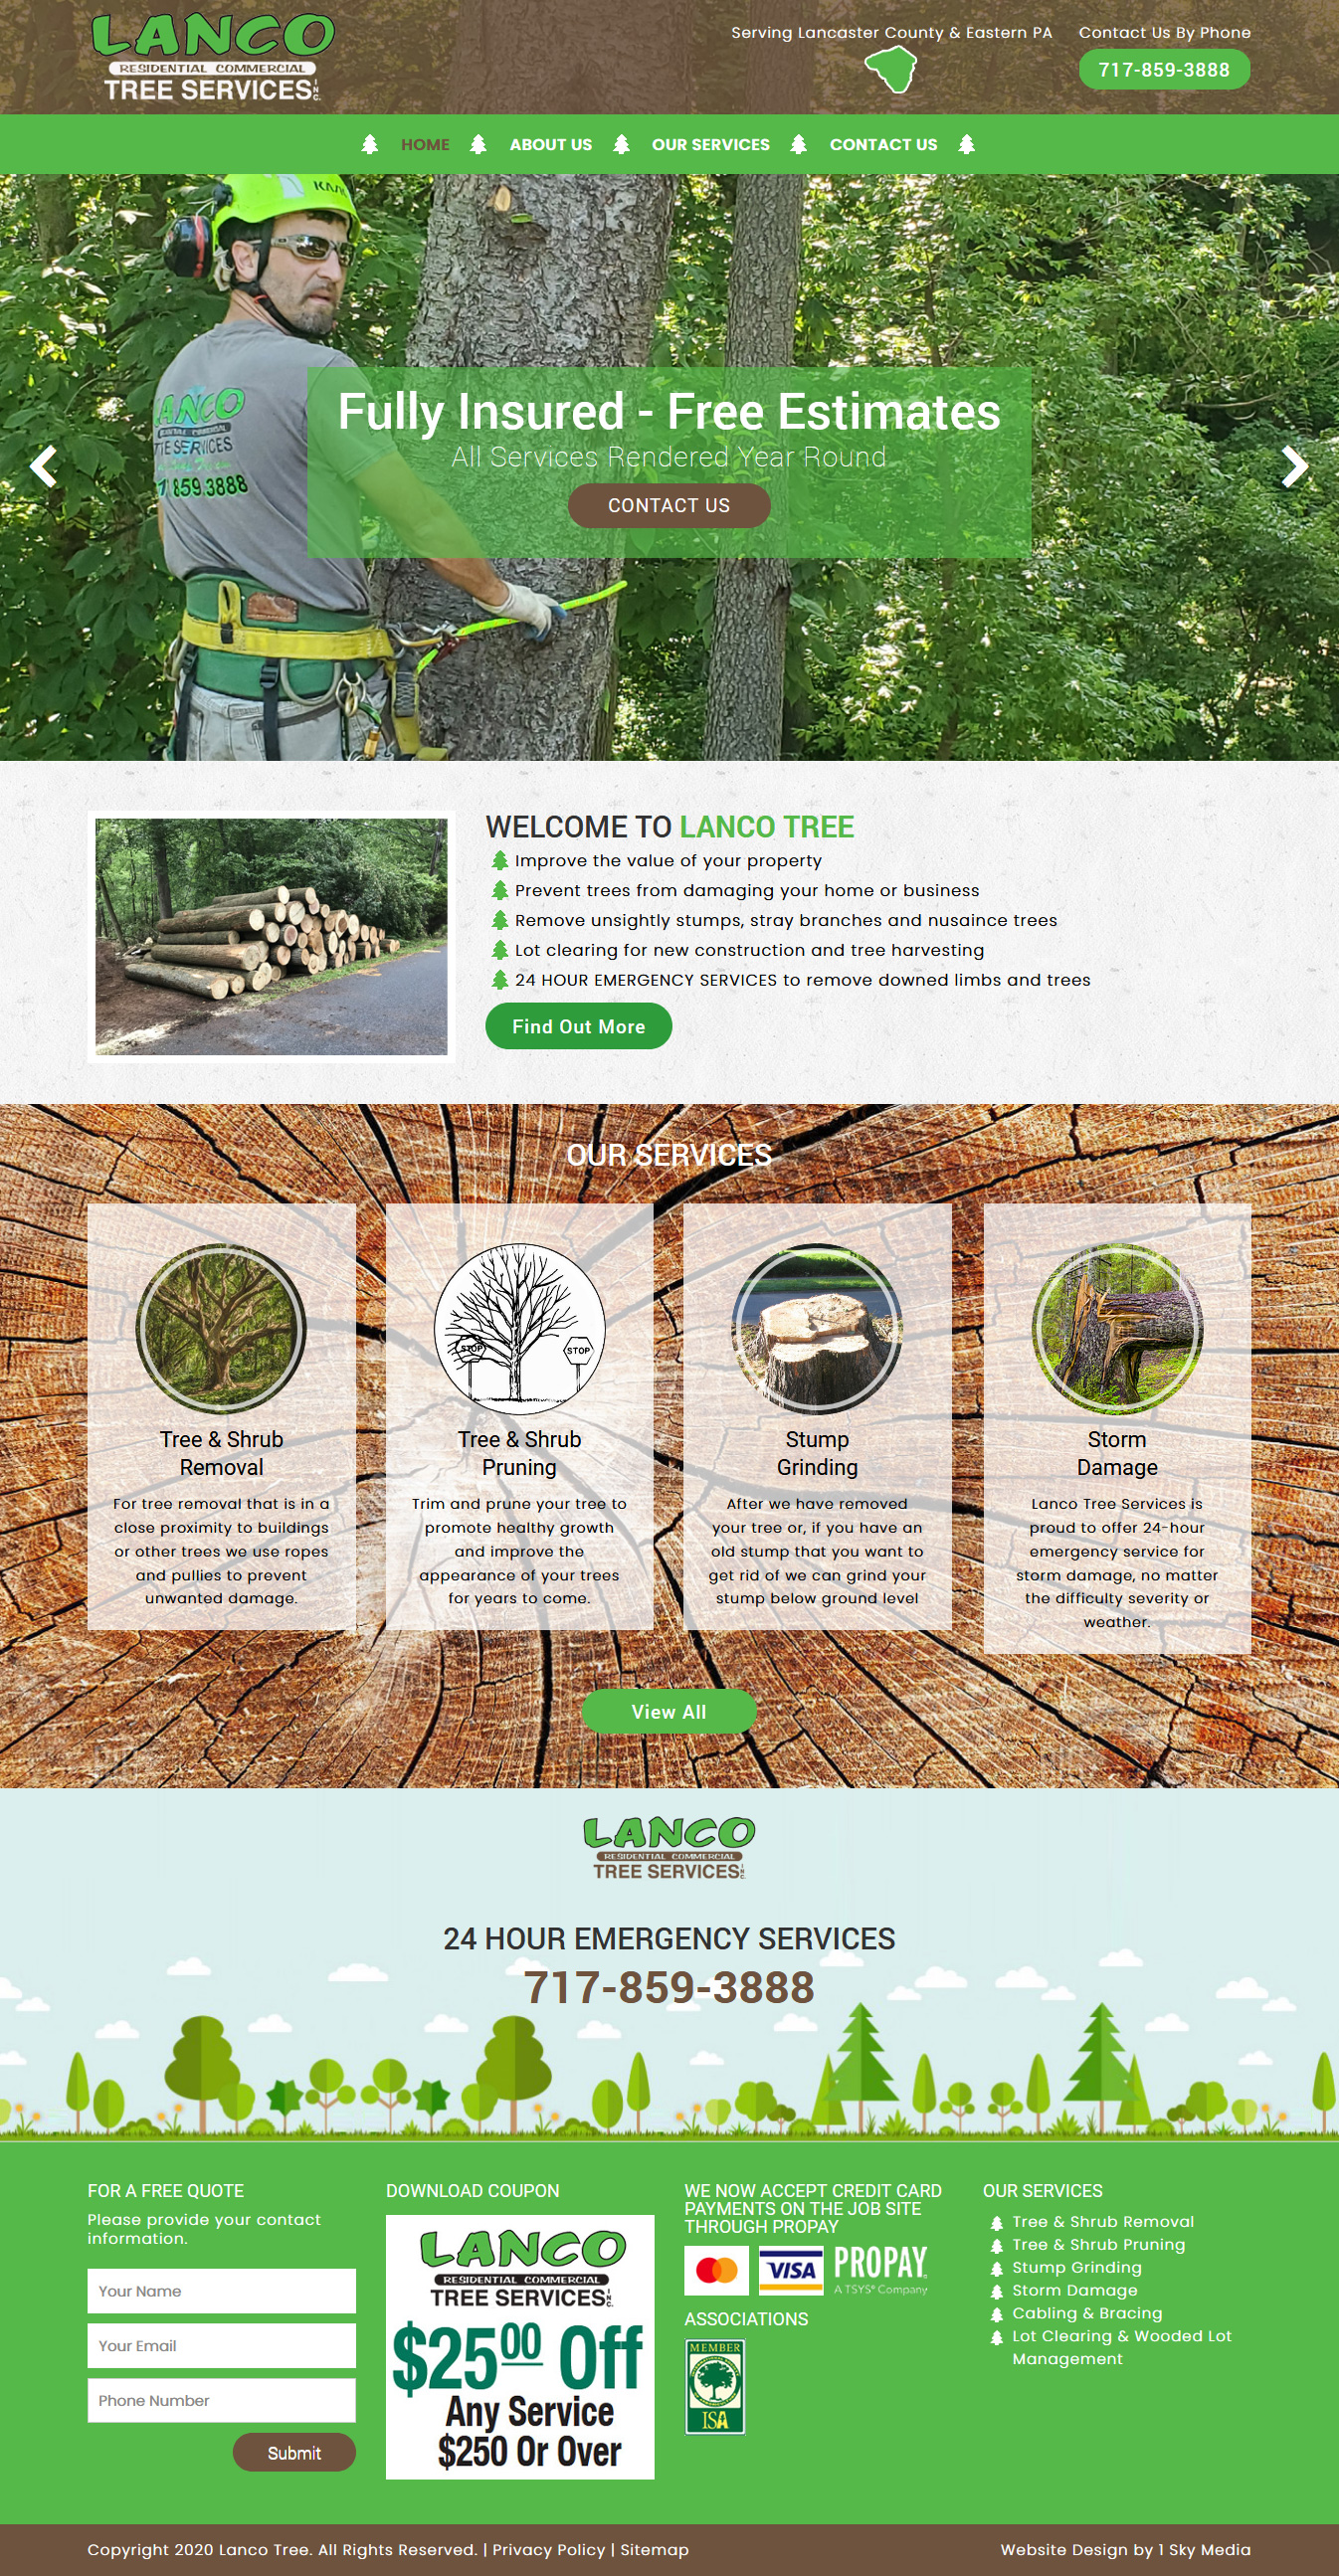 Lanco Tree Services -  Tree removal website design